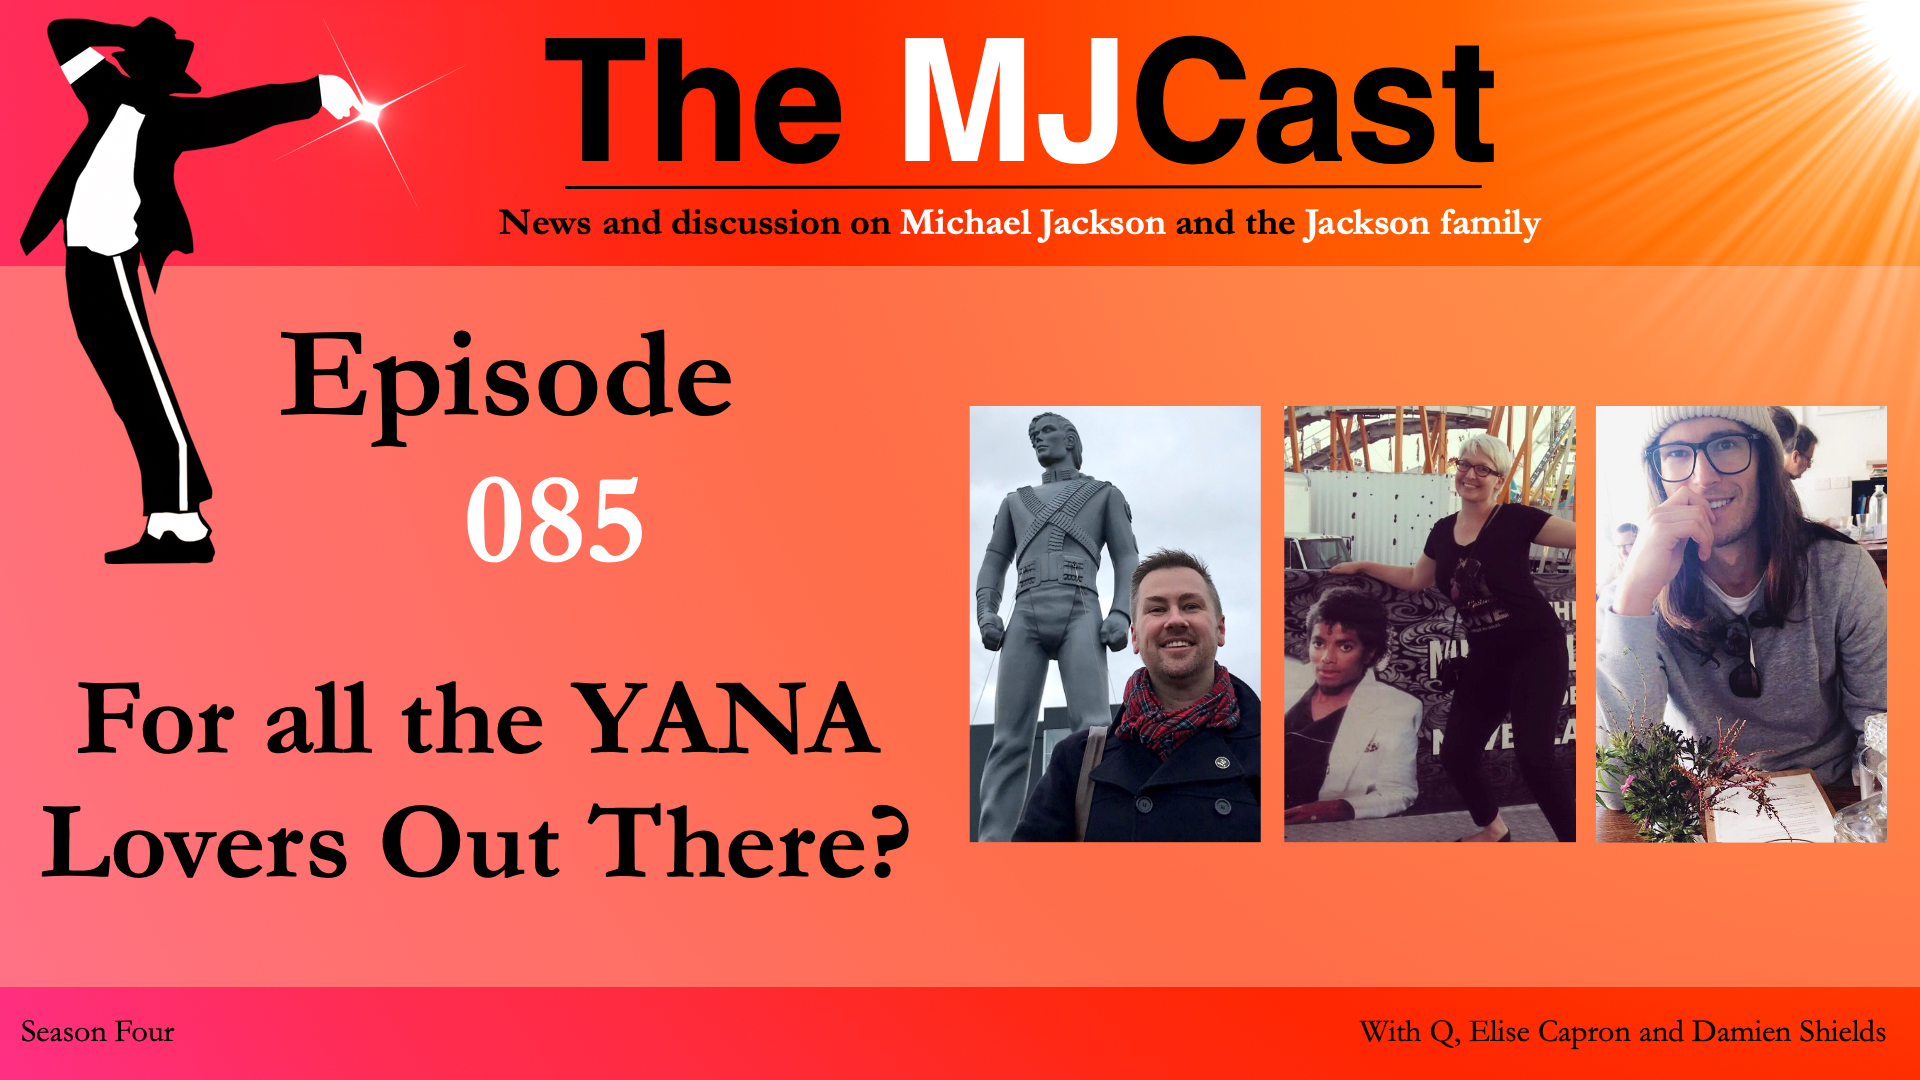 Podcast the mjcast after hosting four epic back to back special episodes jamon takes a well deserved break handing the reins over to q elise and damien shields fandeluxe Choice Image